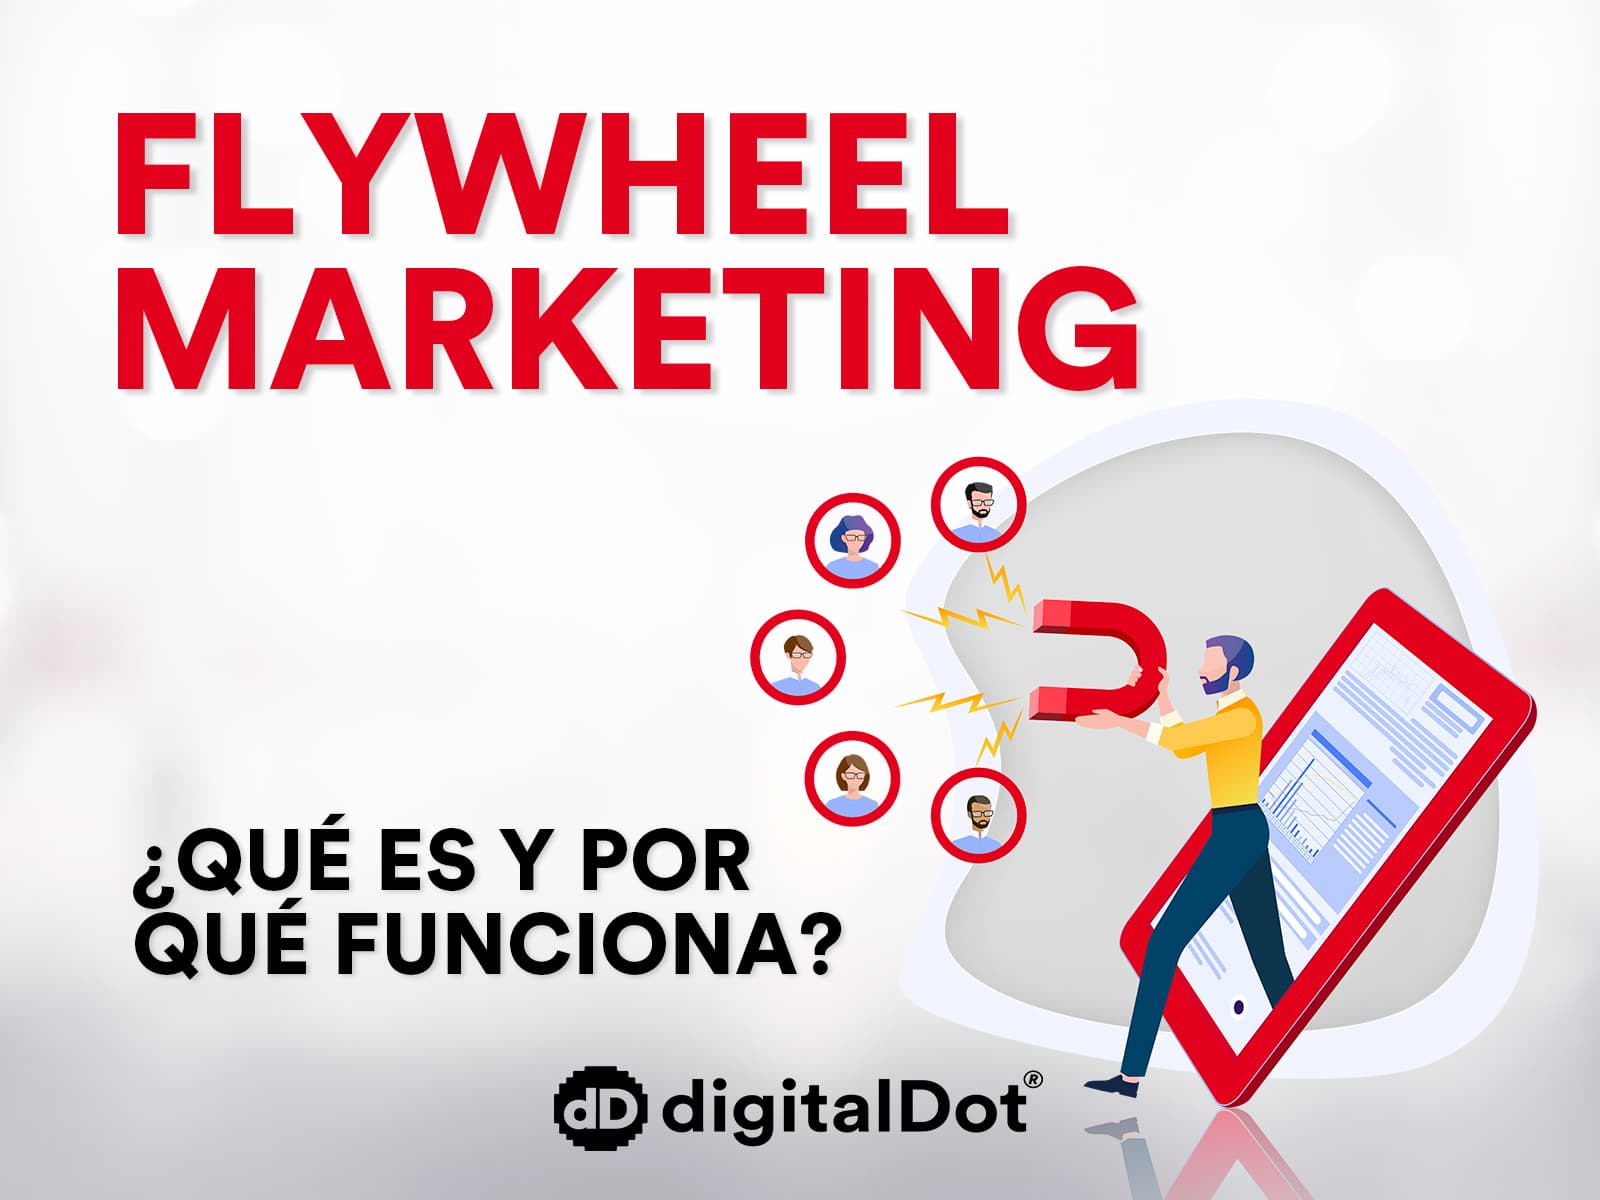 Qué es el Flywheel Marketing y como funciona